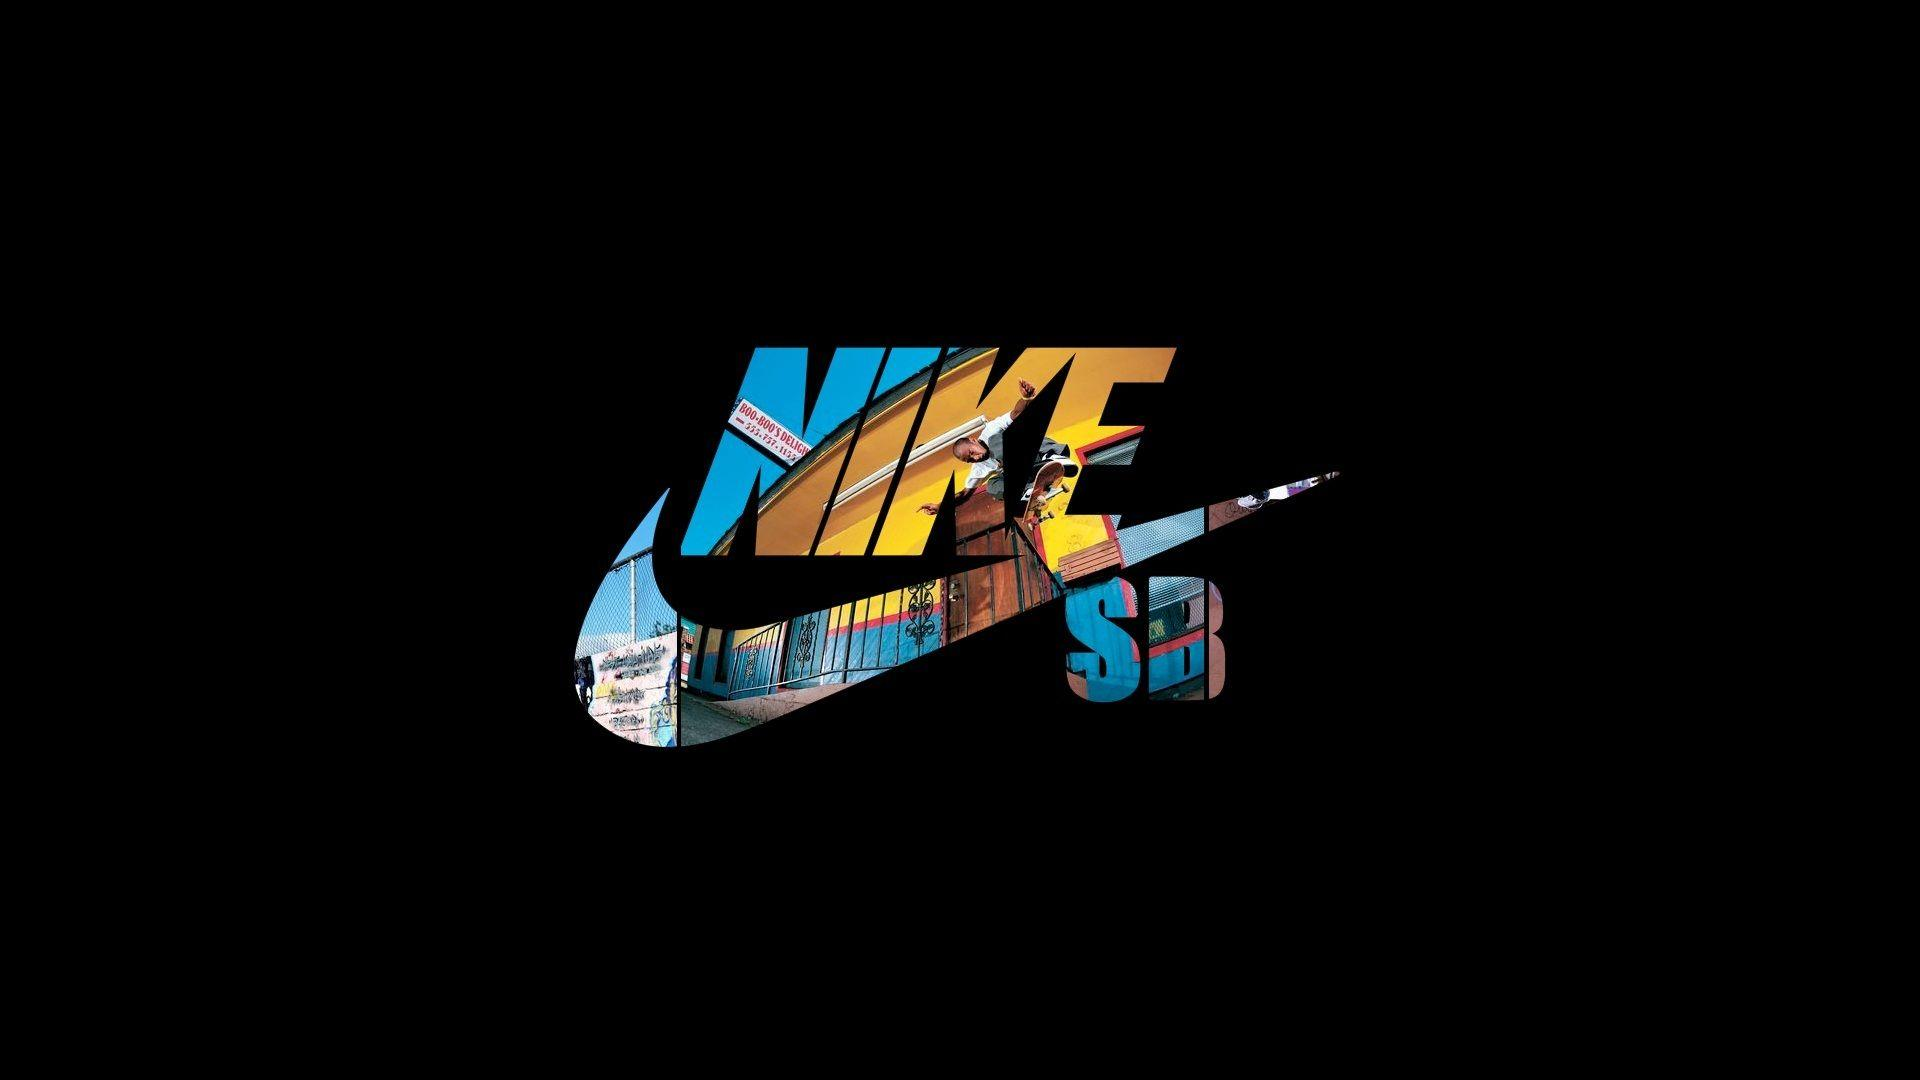 Nike Hd Wallpapers 1080p Wallpaper Cave Tons of awesome nike wallpapers to download for free. nike hd wallpapers 1080p wallpaper cave